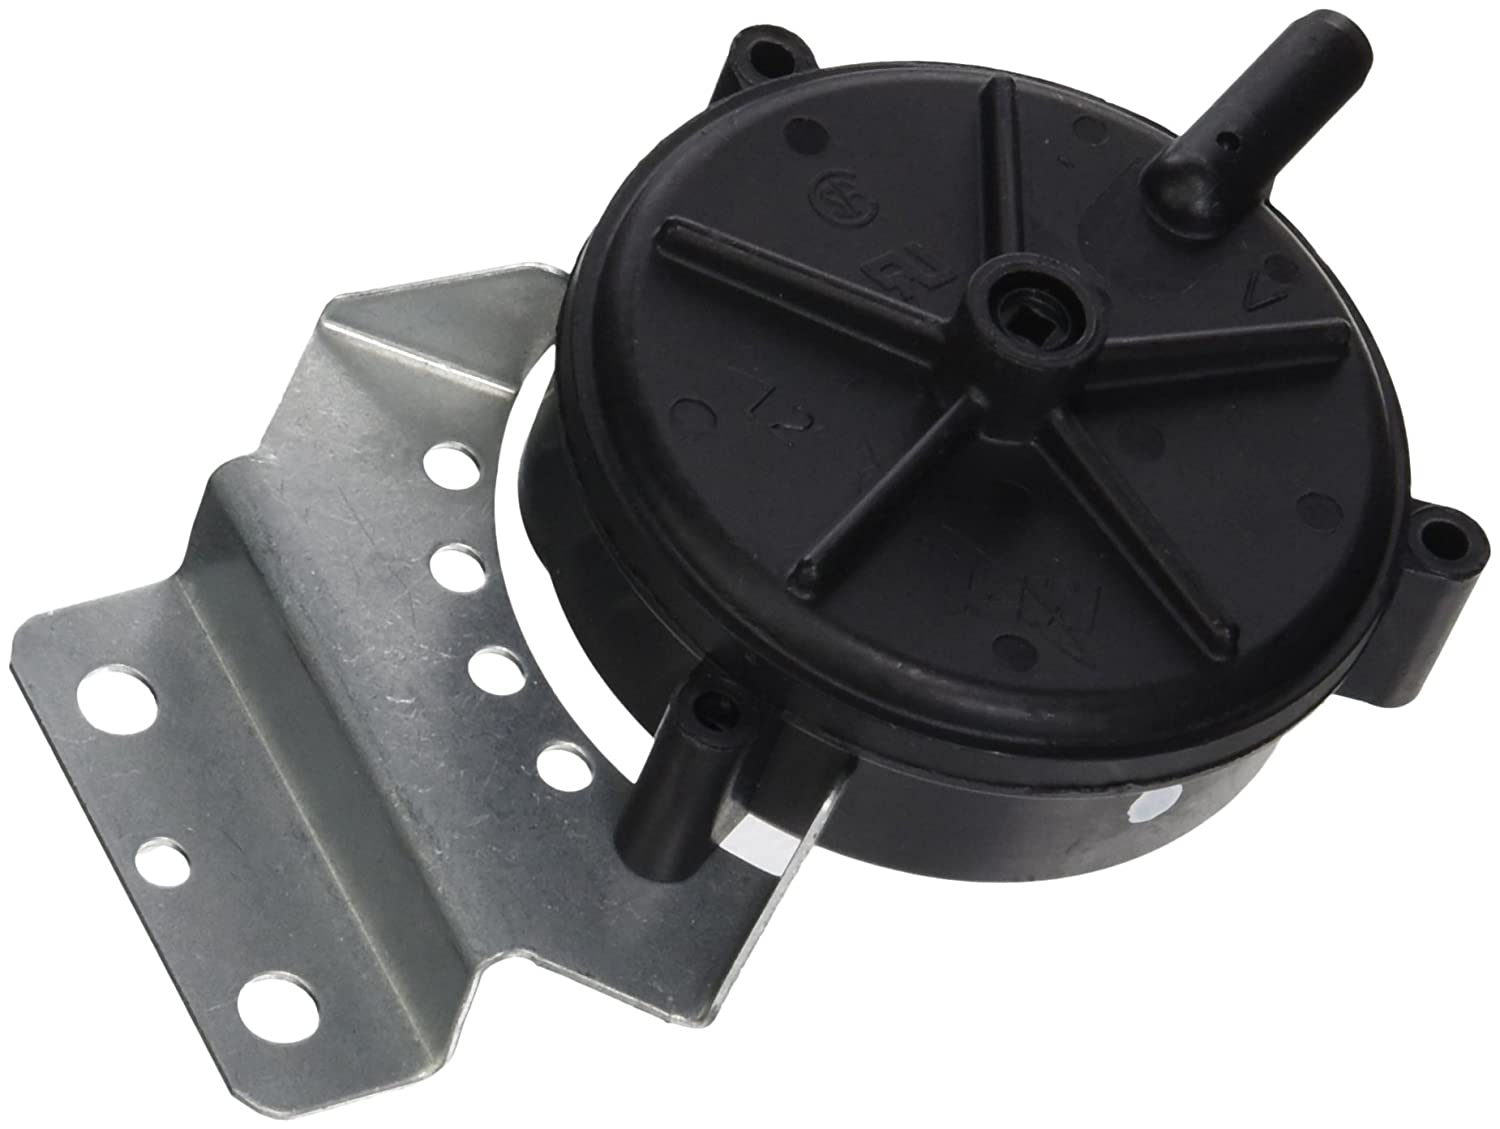 Goodman 20197312 Pressure Switch Front Cover